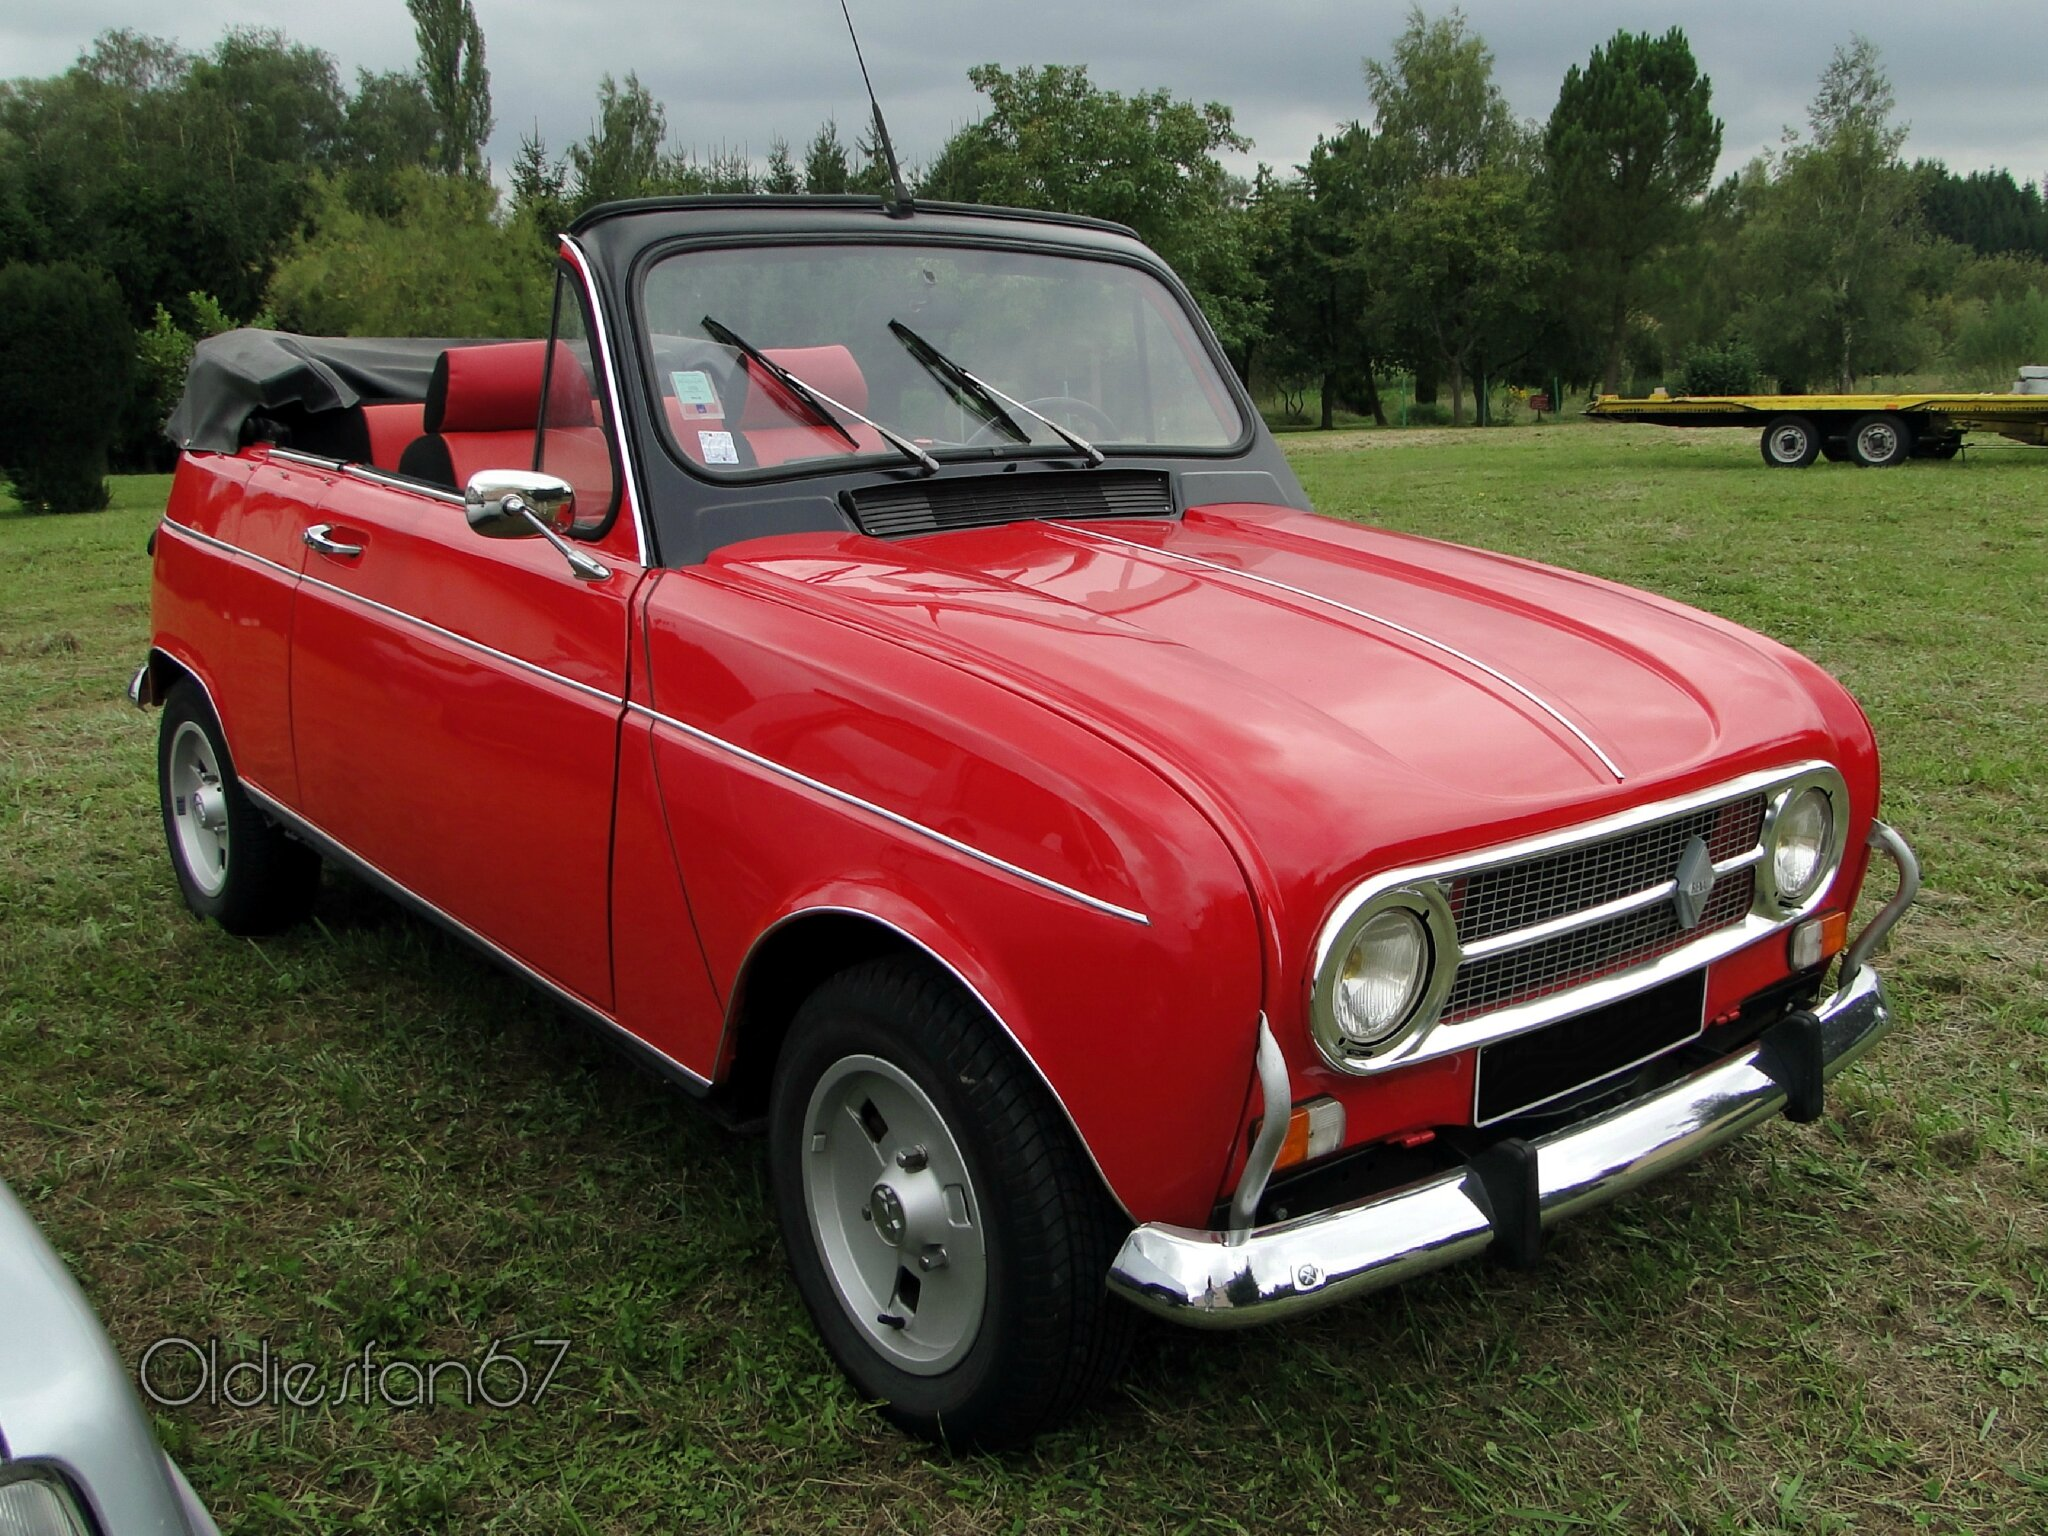 renault 4 tl 2 portes cabriolet 1968 1974 oldiesfan67 mon blog auto. Black Bedroom Furniture Sets. Home Design Ideas